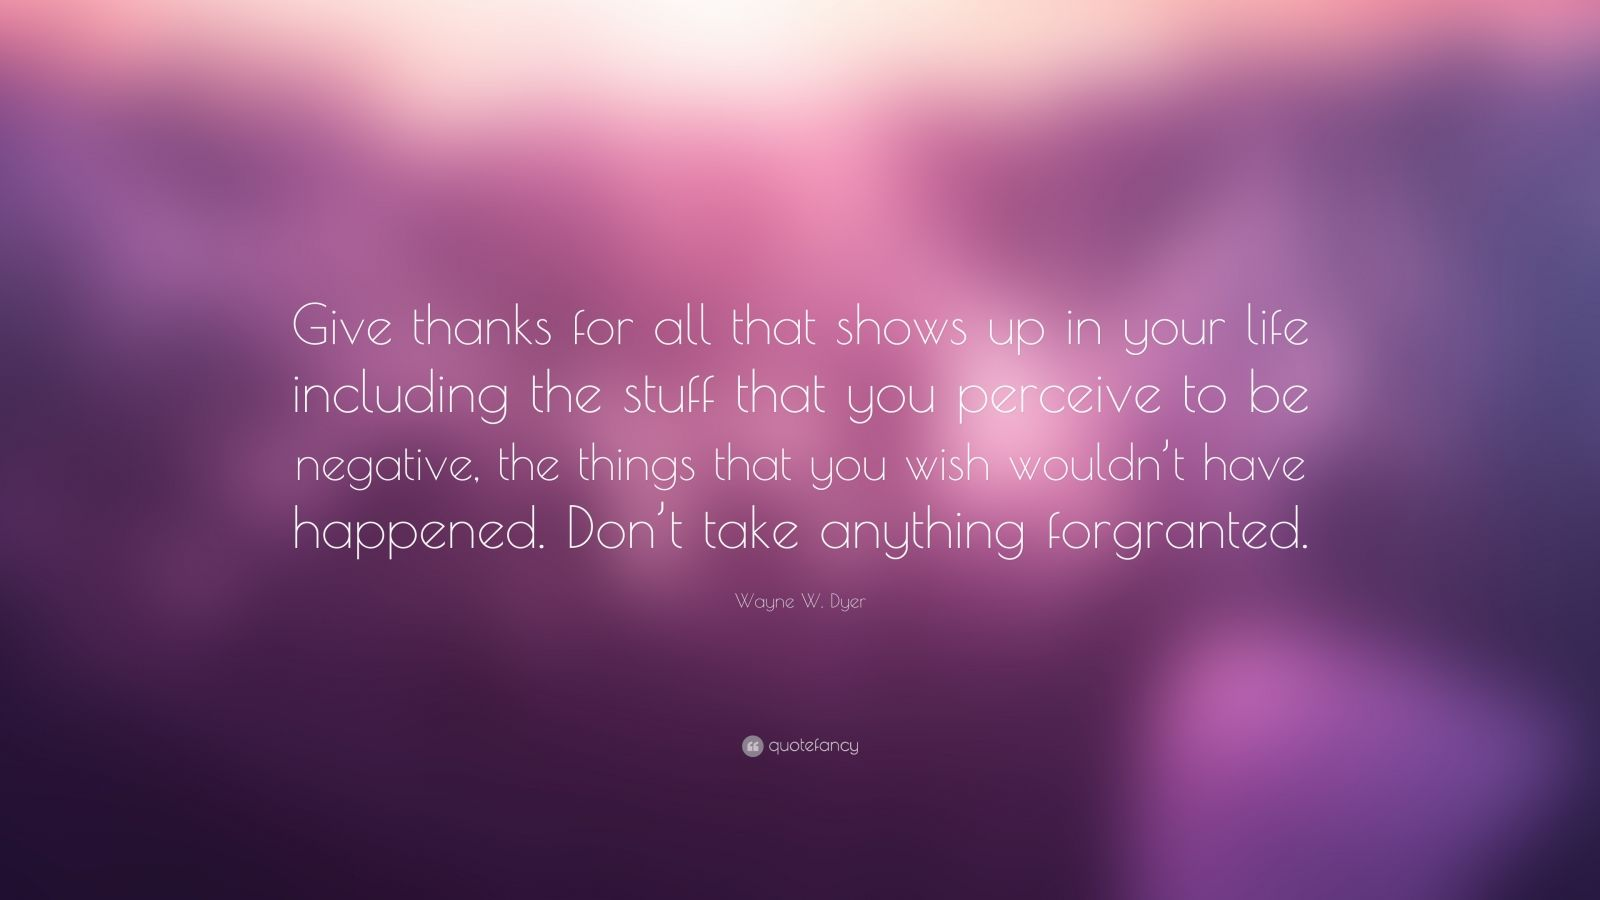 """Wayne W. Dyer Quote: """"Give thanks for all that shows up in your life including the stuff that you perceive to be negative, the things that you wish wouldn't have happened. Don't take anything forgranted."""""""